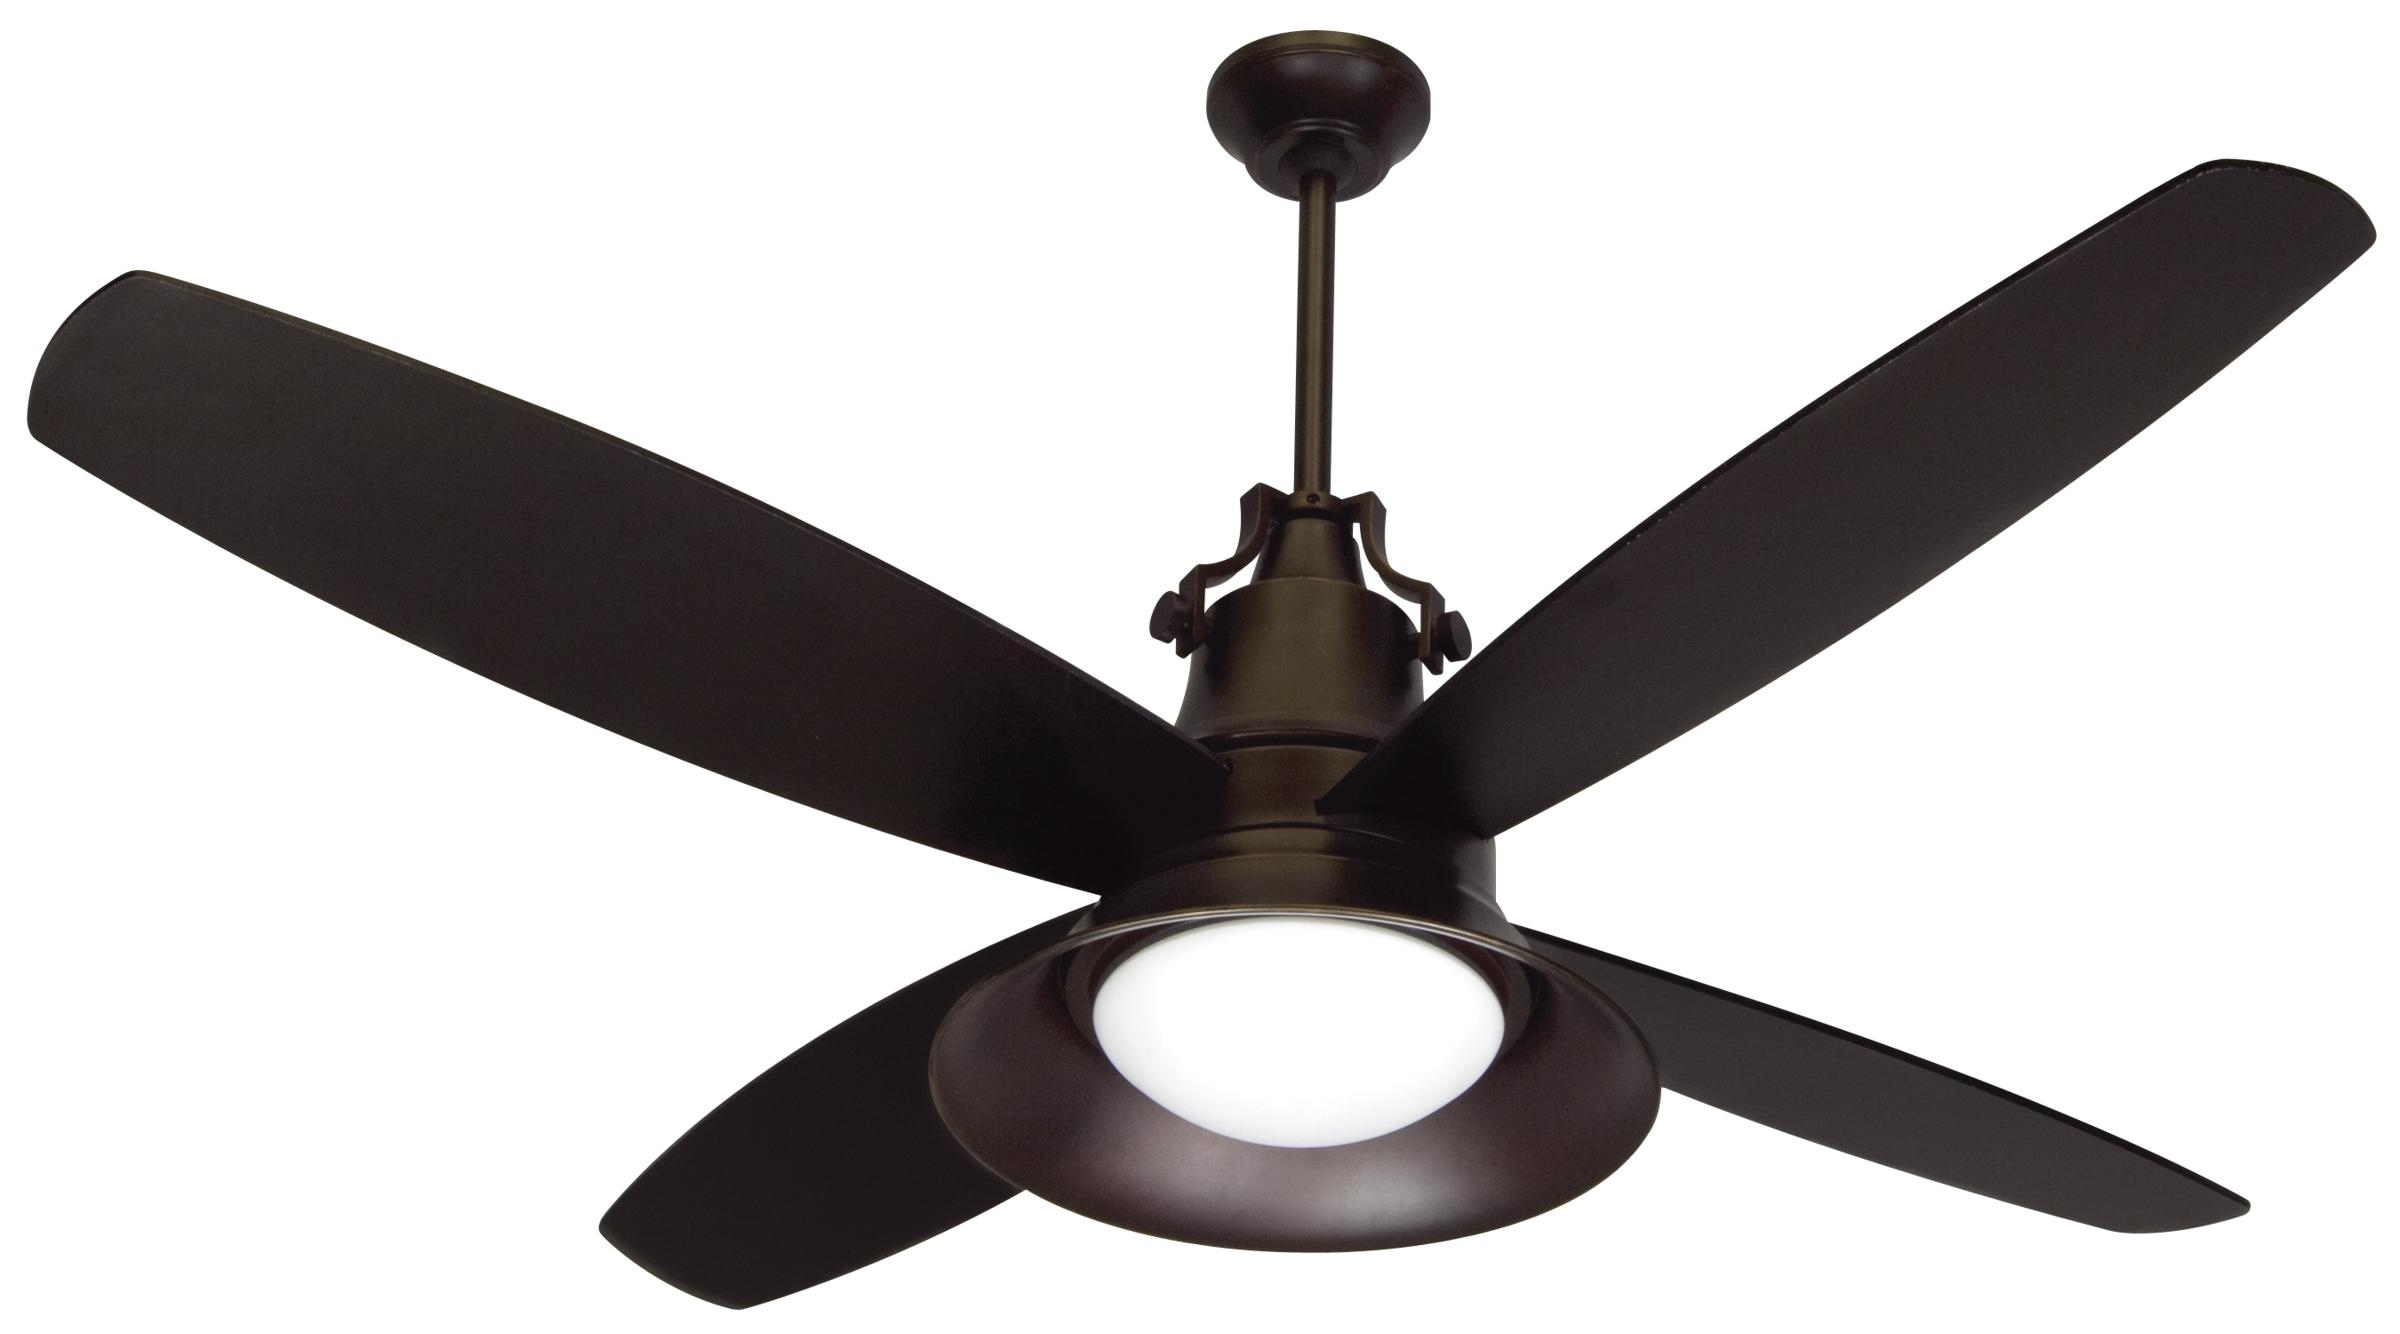 Most Popular Ceiling: Amazing Black Industrial Ceiling Fan Large Industrial Throughout Industrial Outdoor Ceiling Fans With Light (View 7 of 20)